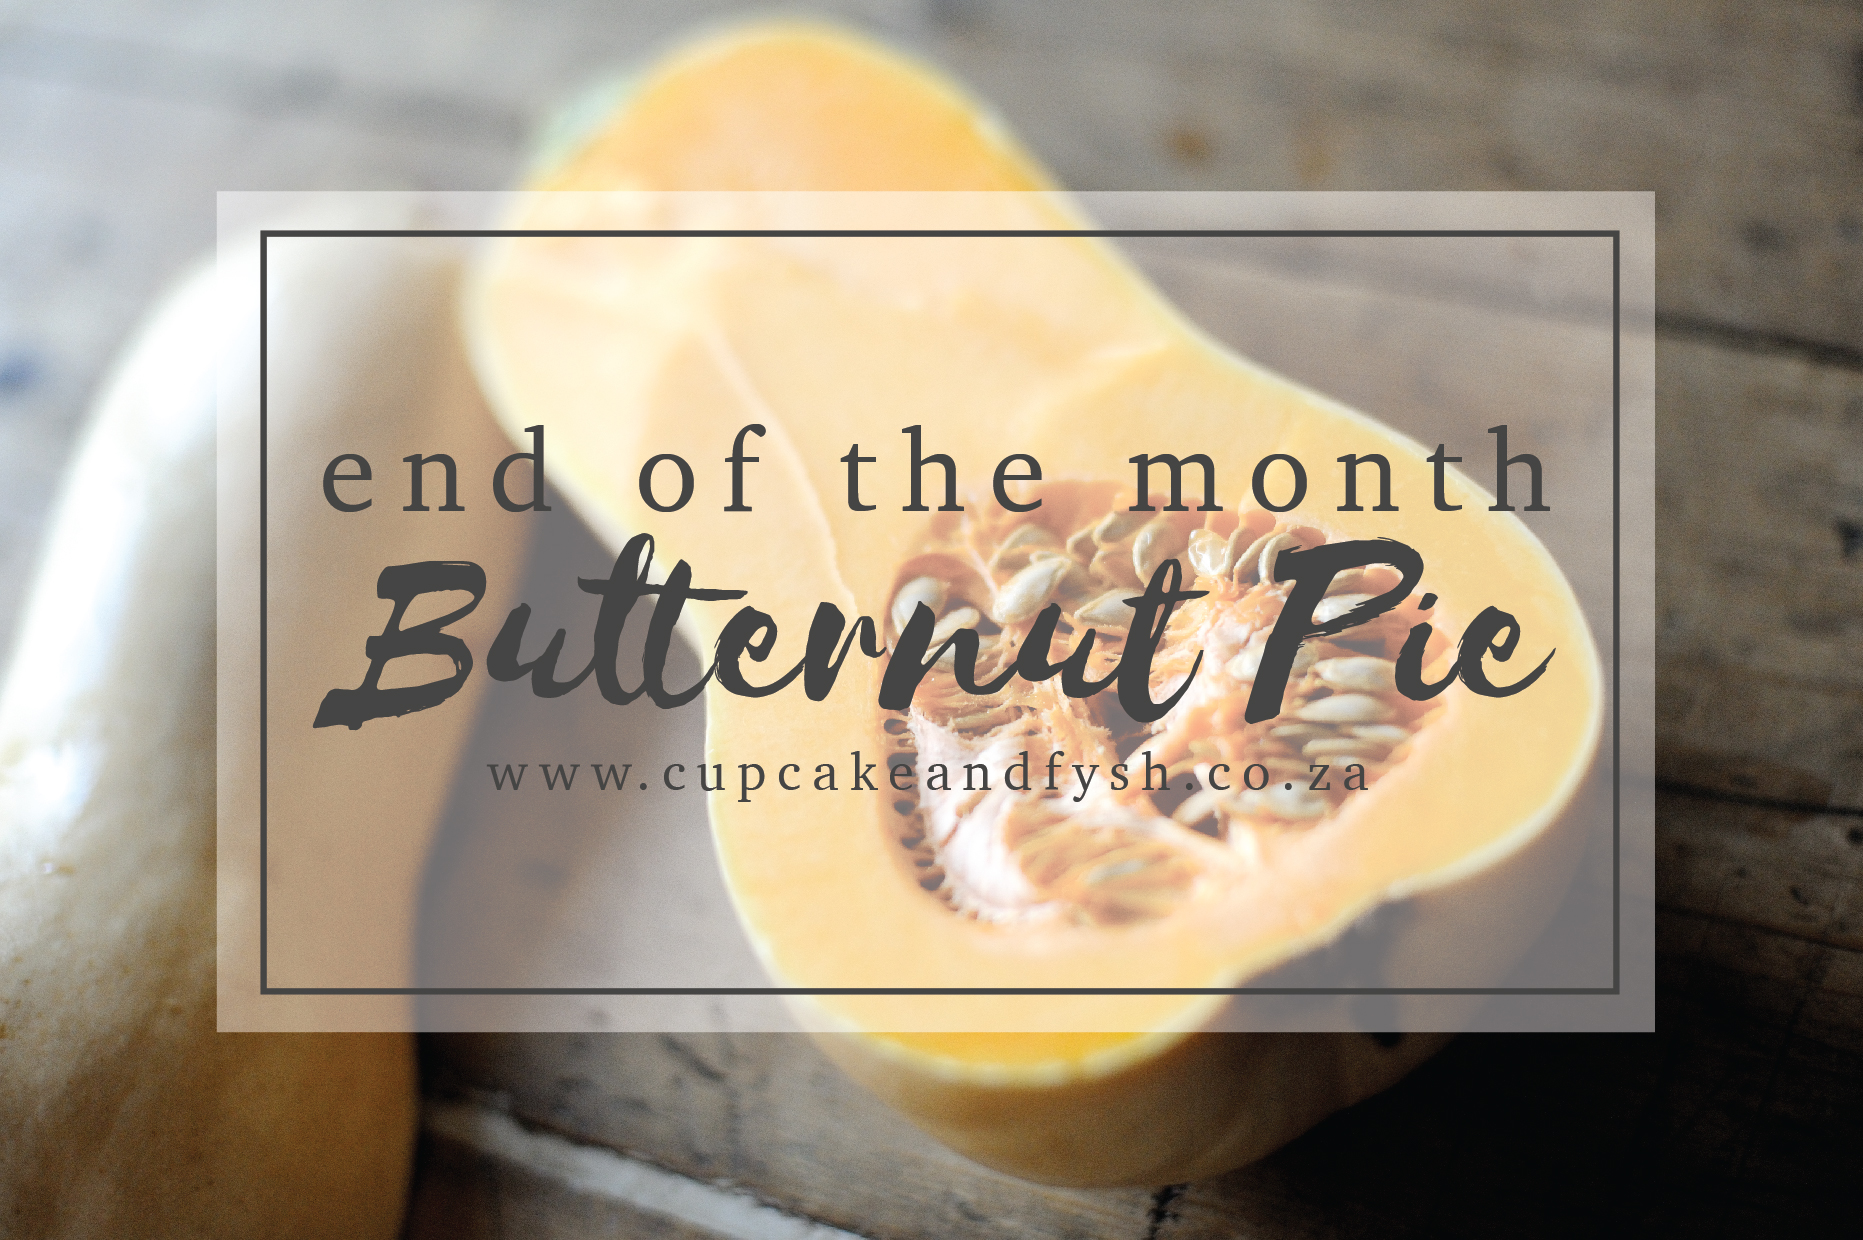 end of the month butternut pie